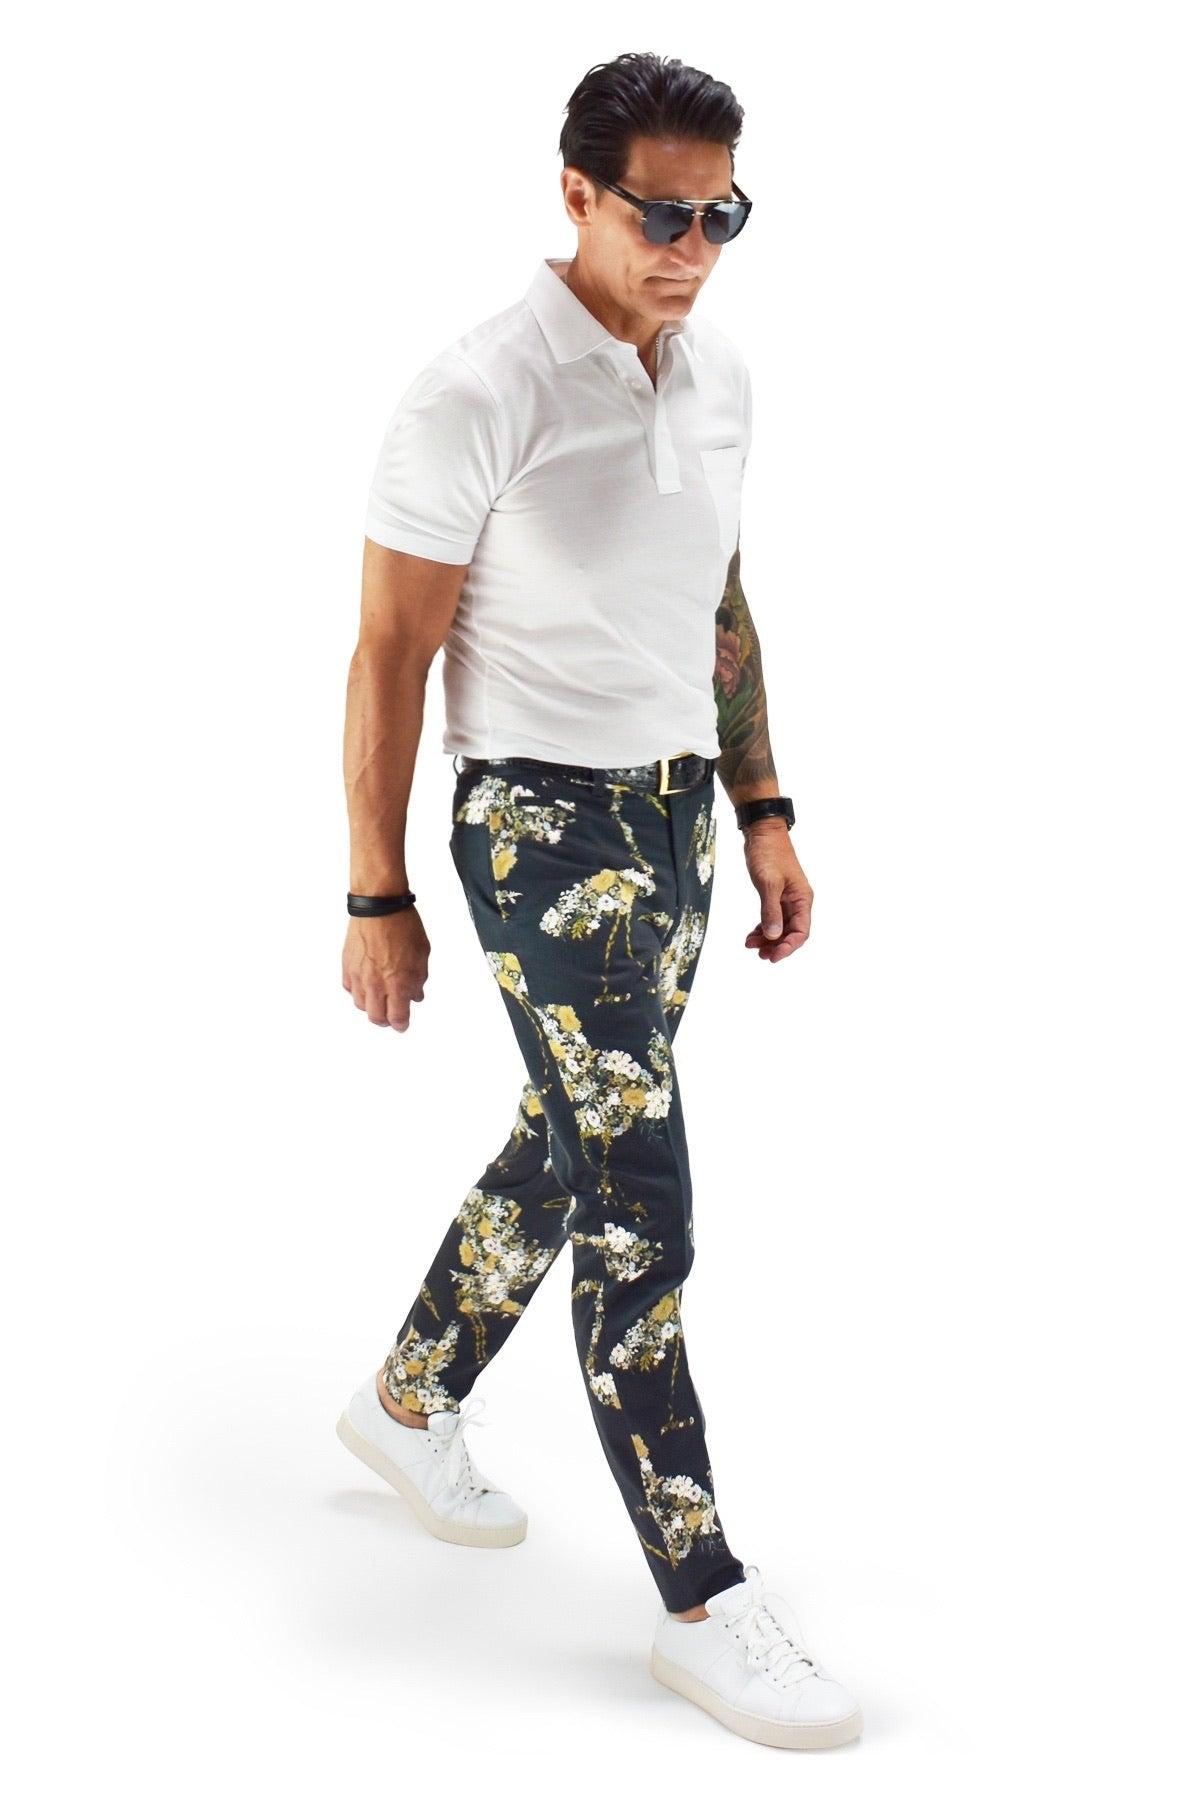 David August Slim Fit Tapered Black with Floral Crane Pattern Cotton Trousers - Cut-to-Order